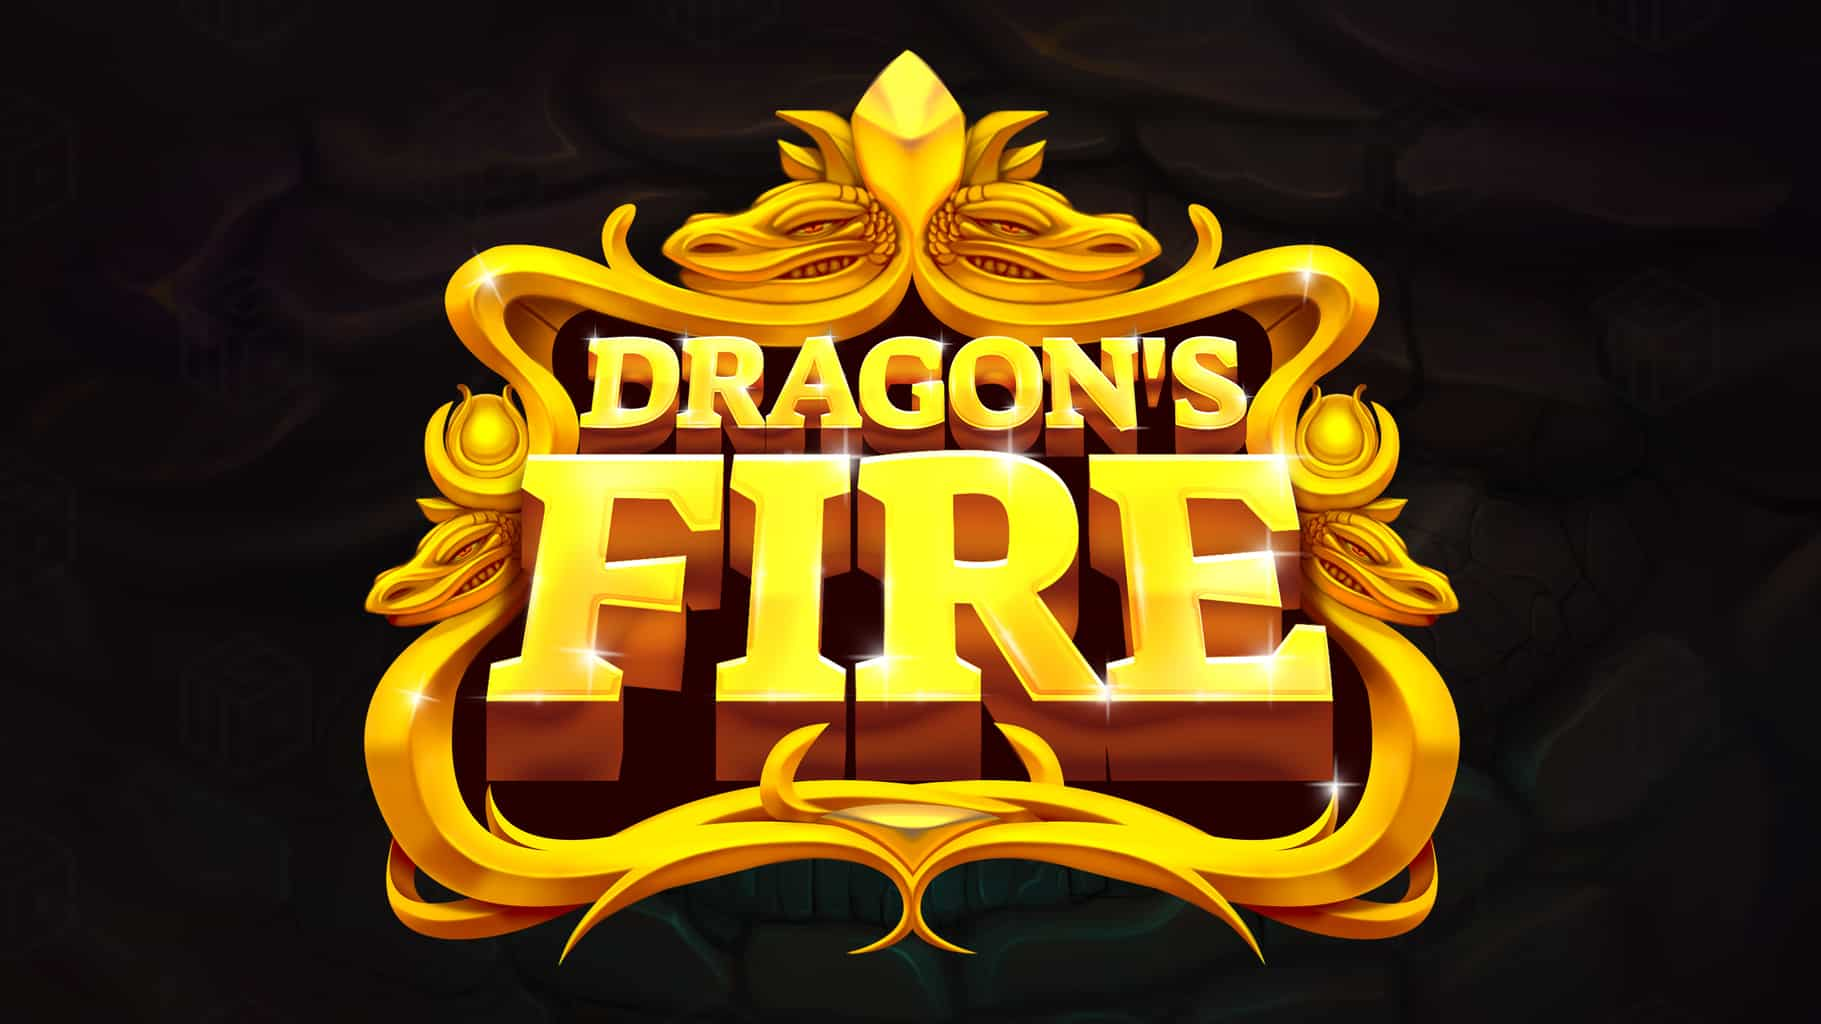 Red Tiger's Dragons Fire Global Launch Today!